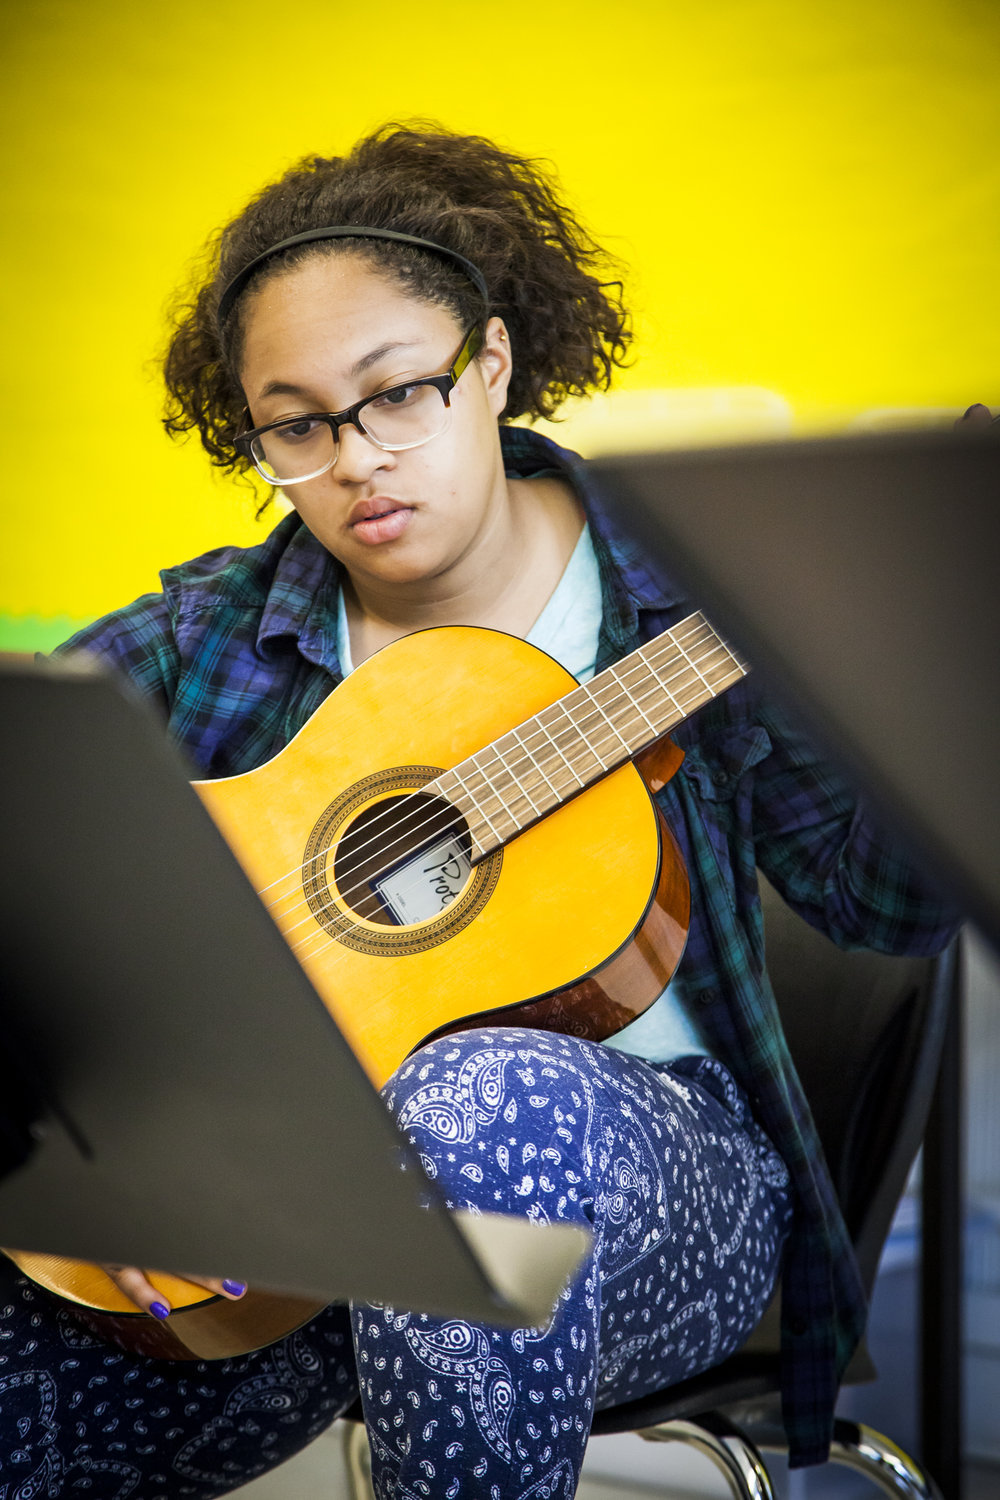 after school music programs for kids in Chicago